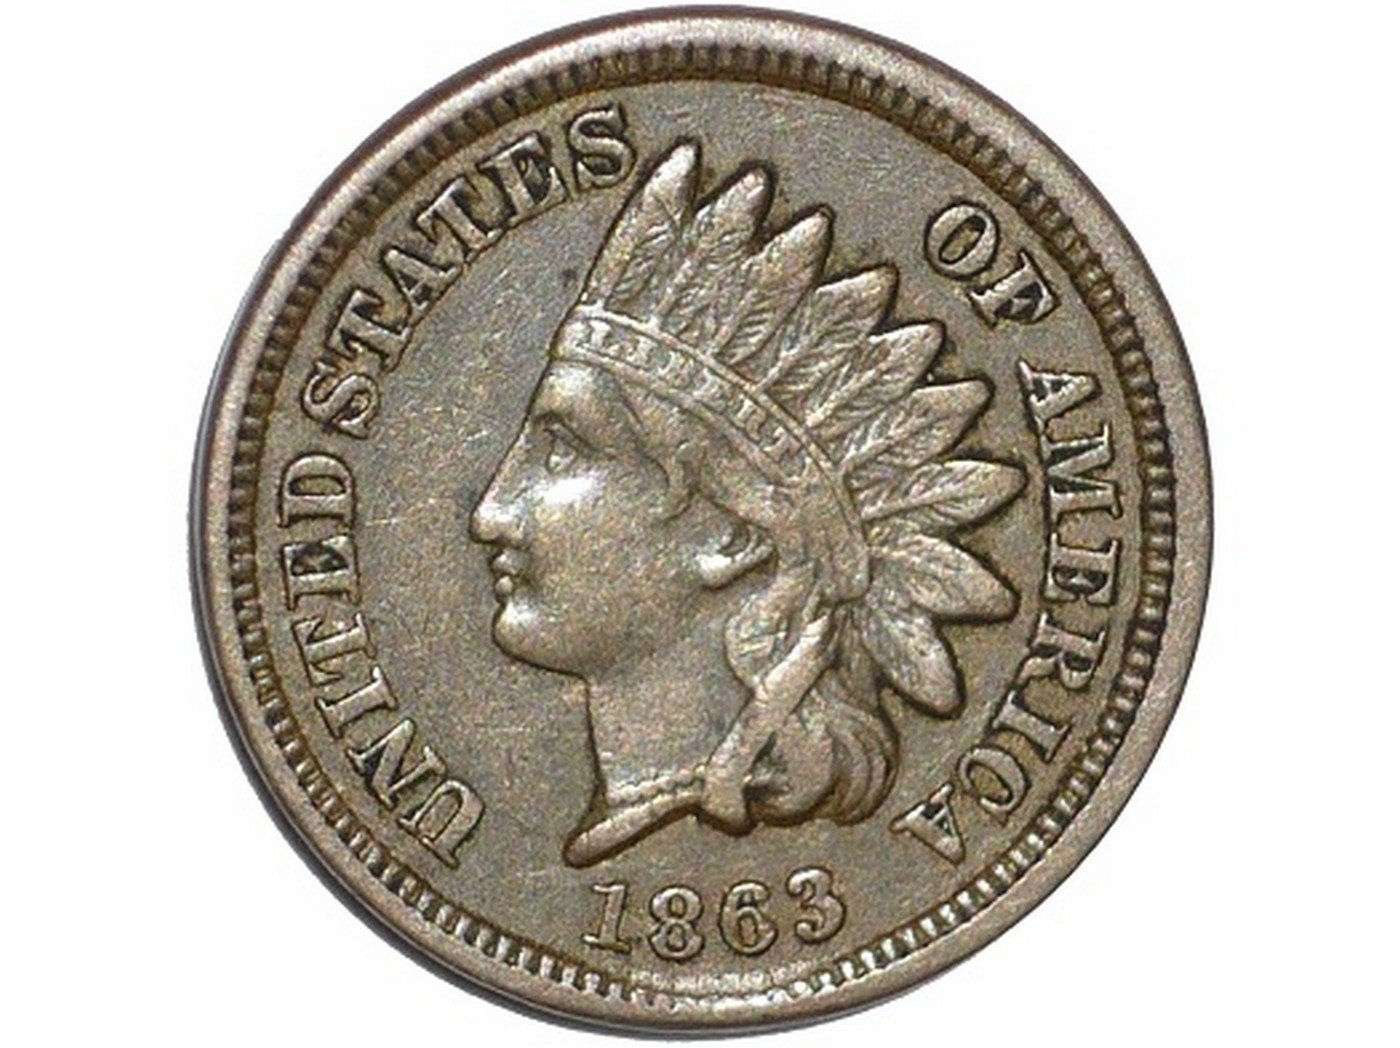 1863 Obverse of CUD-027 - Indian Head Penny - Photo by David Poliquin